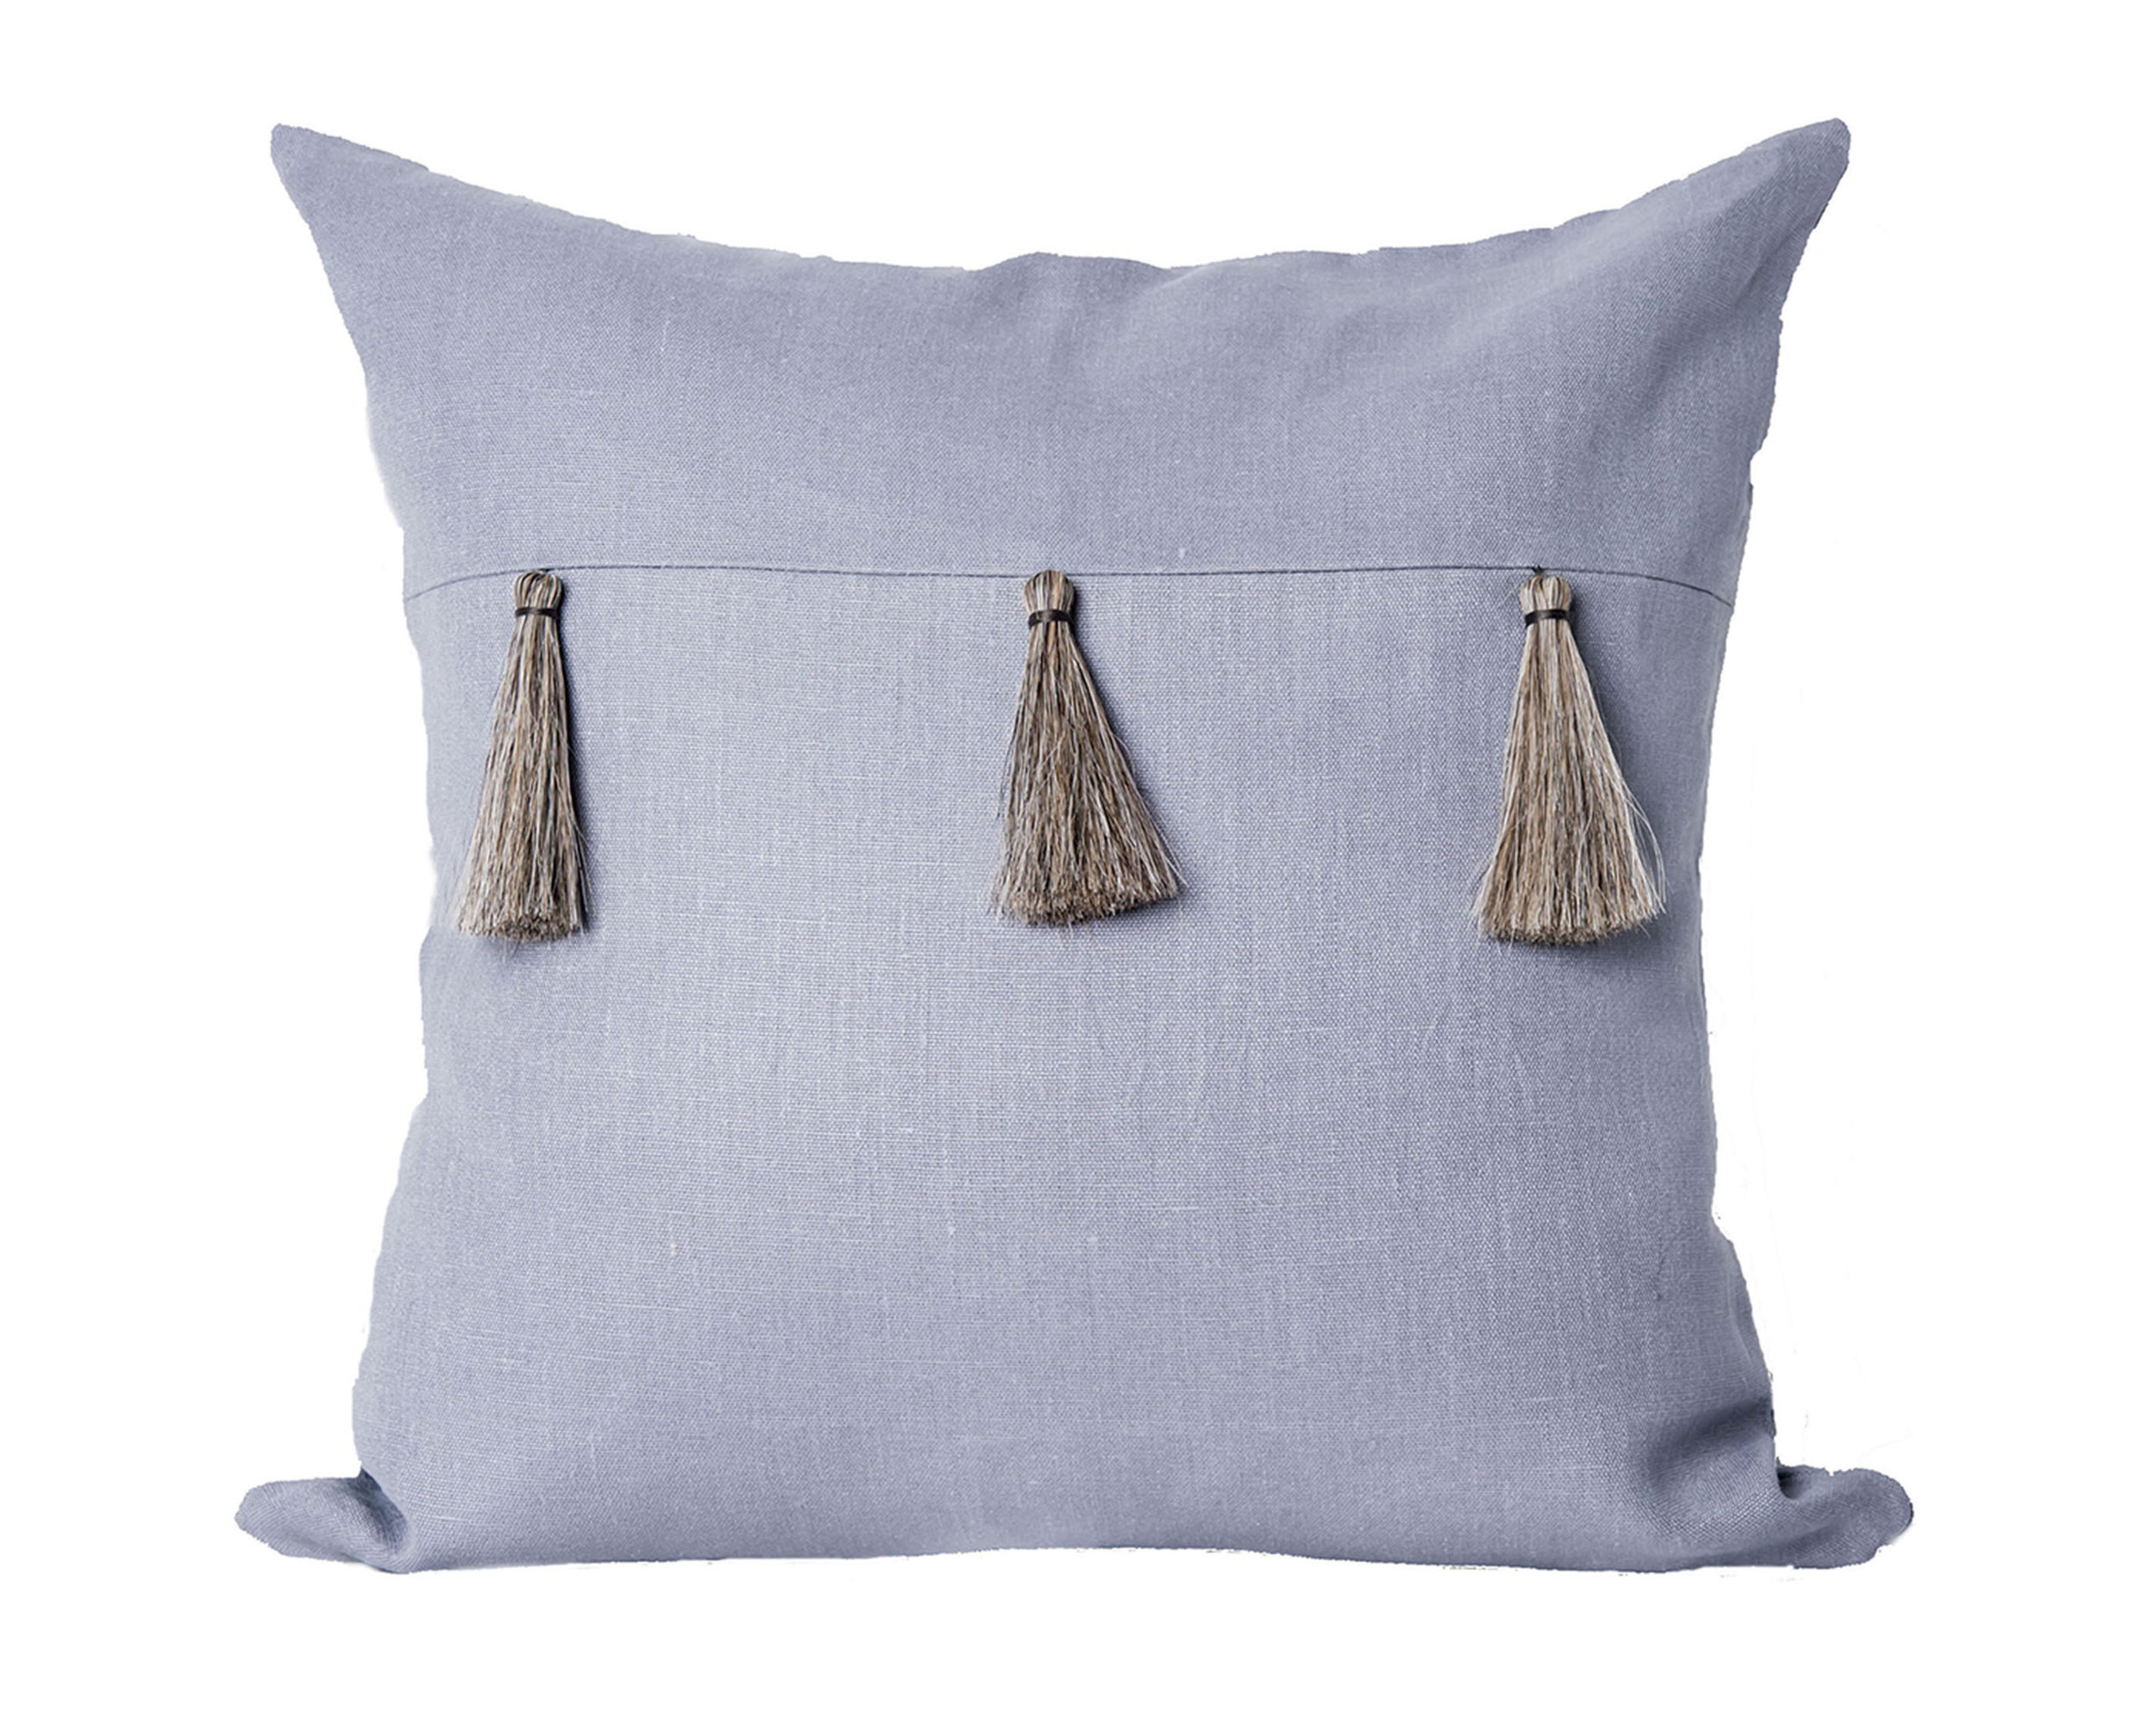 HORSE HAIR TASSEL I 100% LINEN I AVAILABLE IN SIZES 20X20, 22X22, 24X24  Designed in Collaboration by Cannon Schaub & Anita Csordas